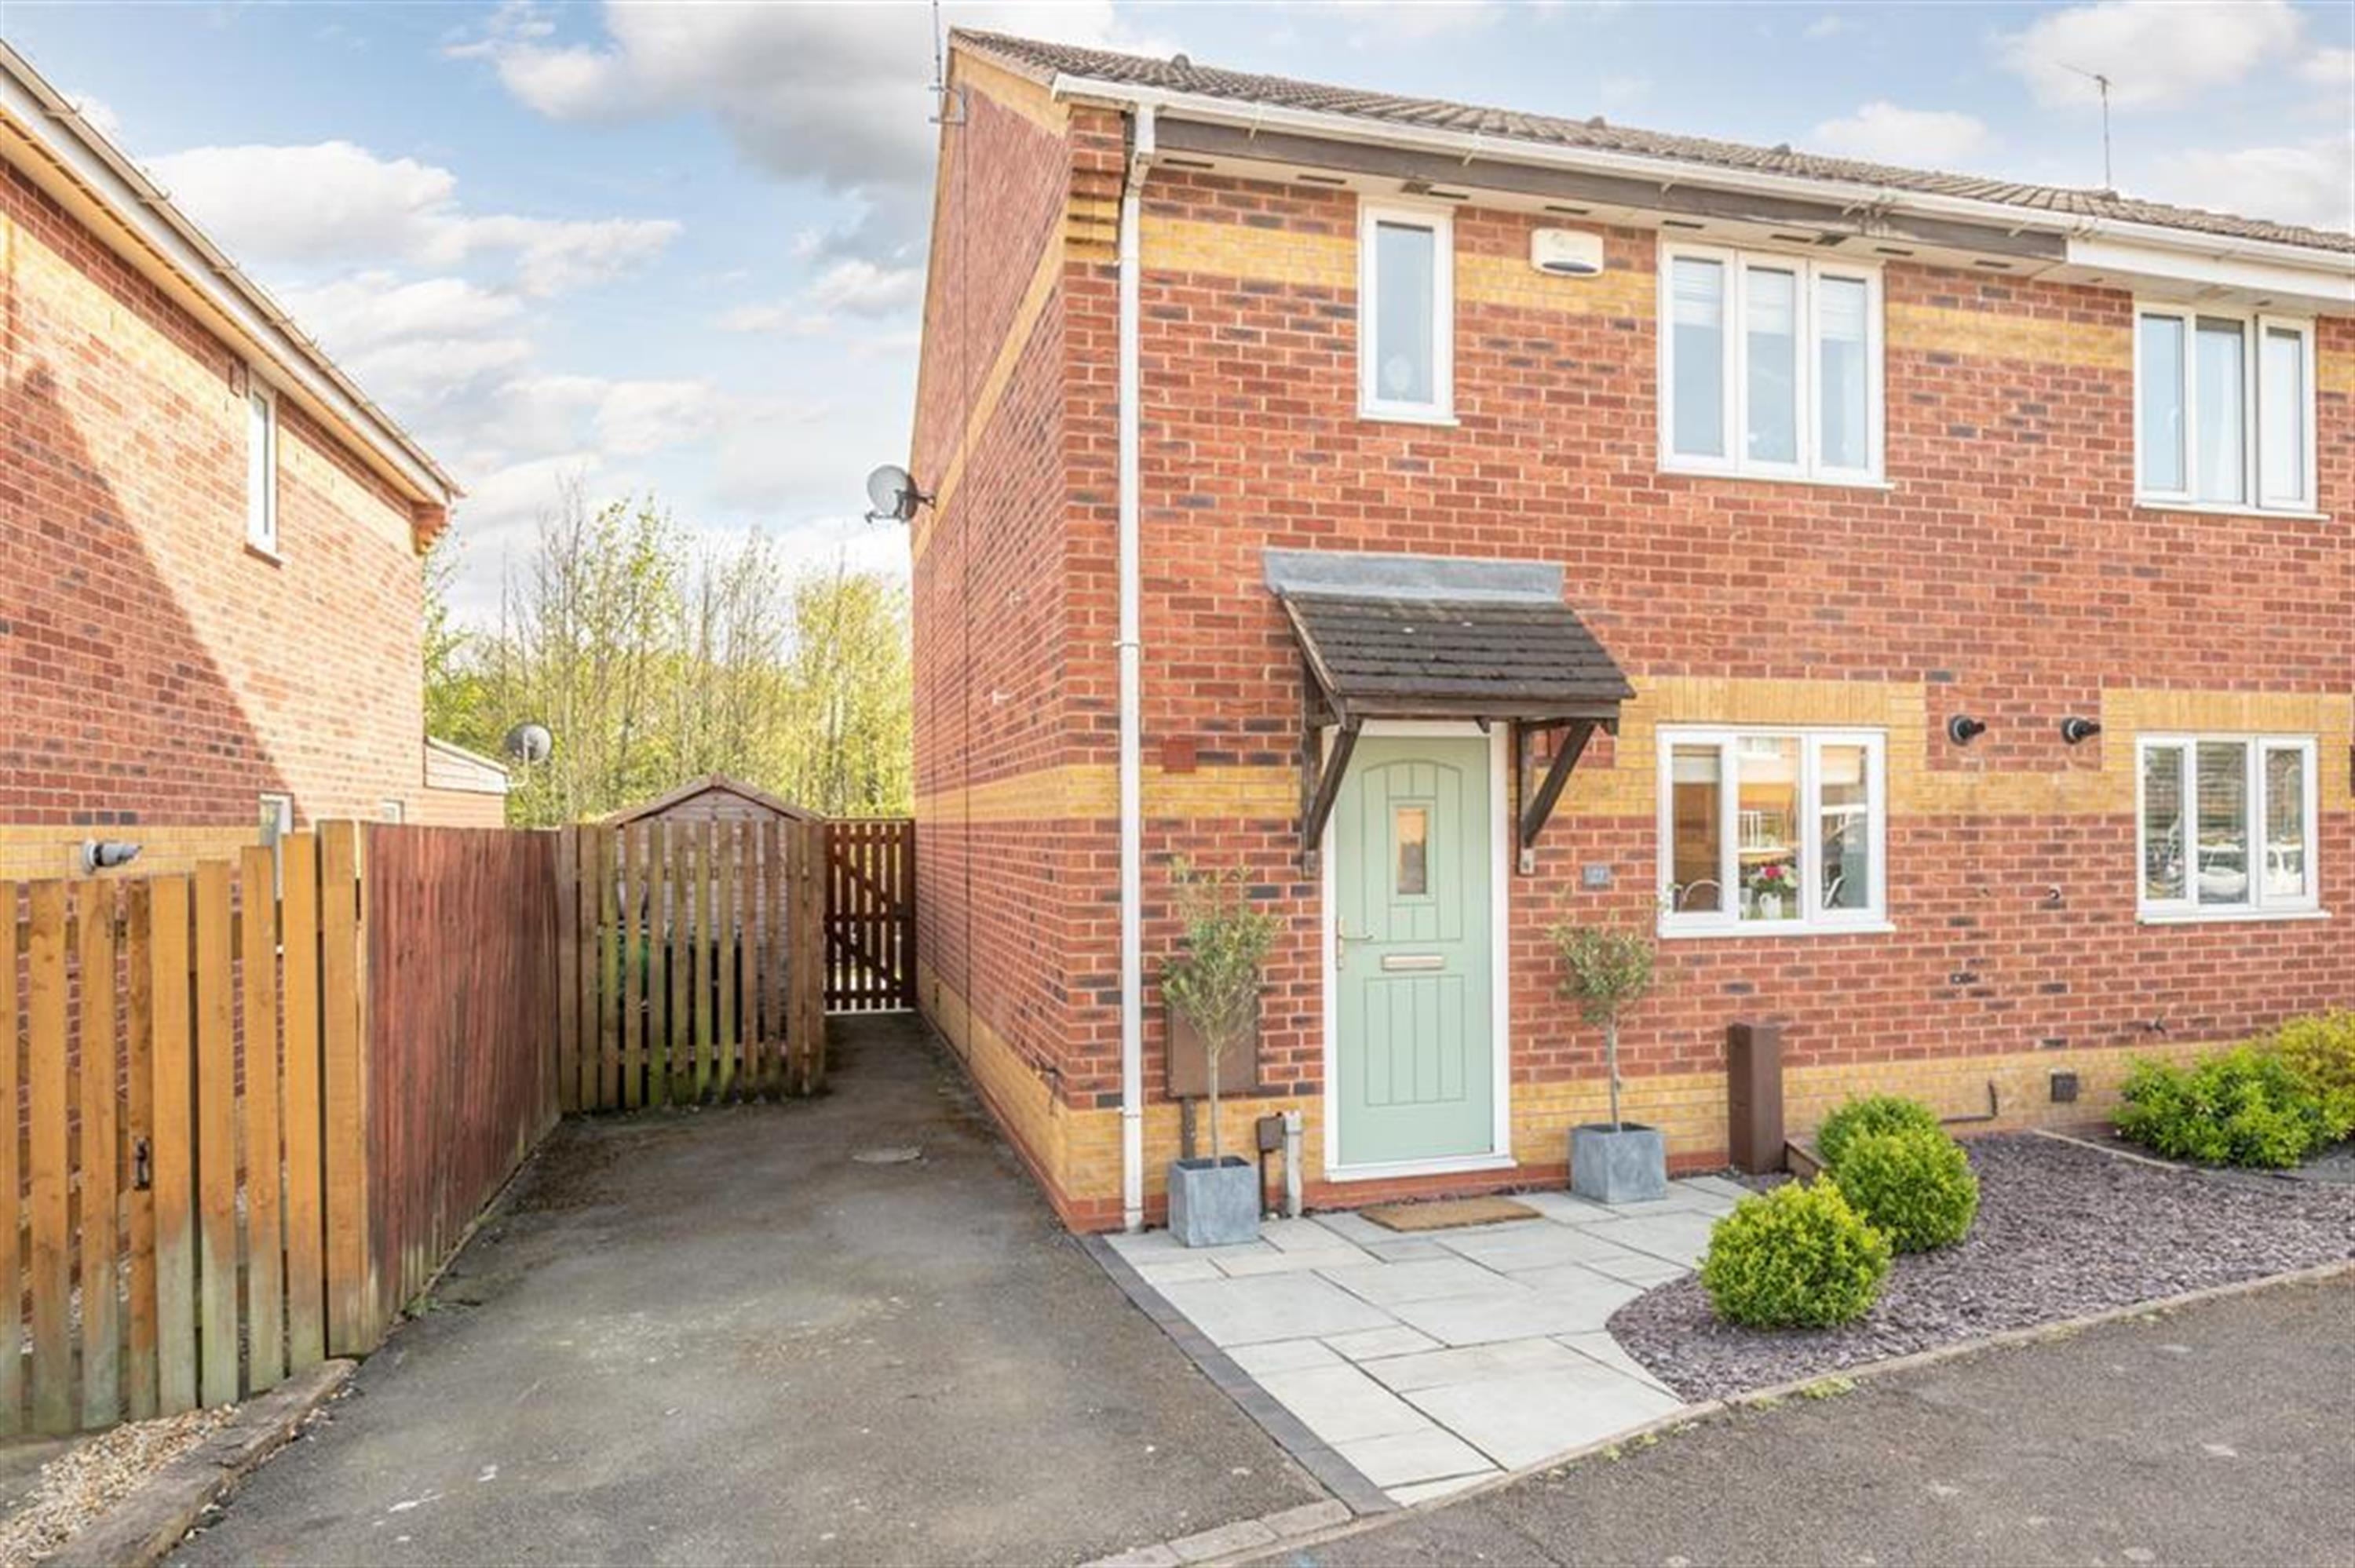 Richardson Drive, Stourbridge, DY8 4DN